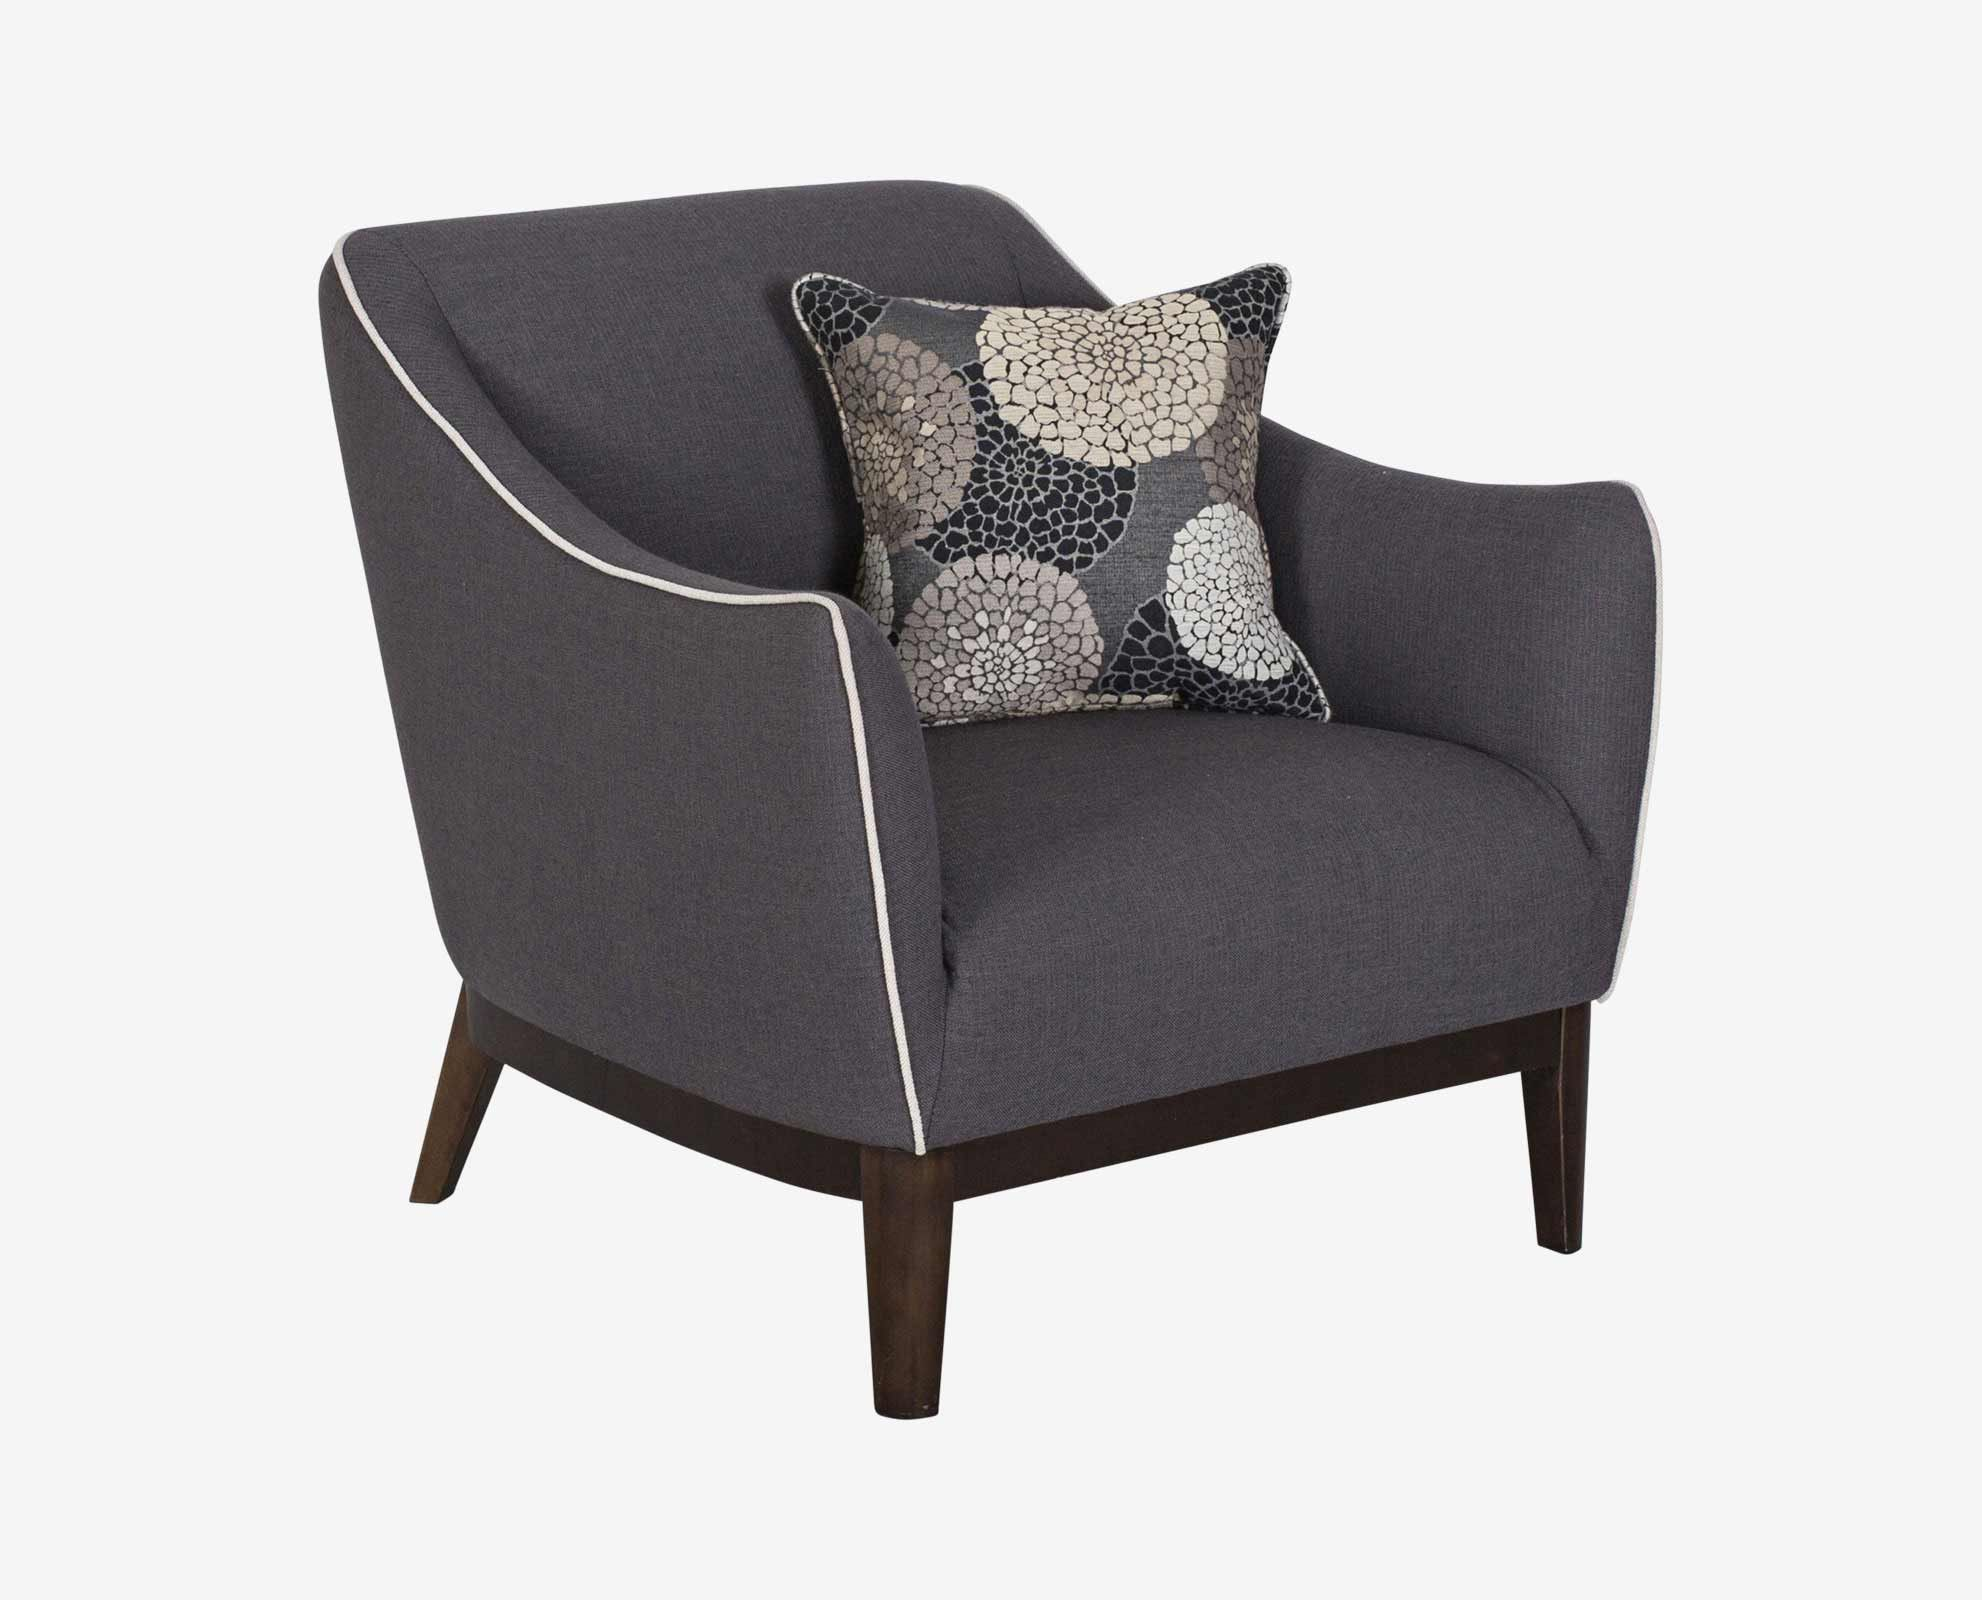 UPSTIL CHAIR | Muebles | Pinterest